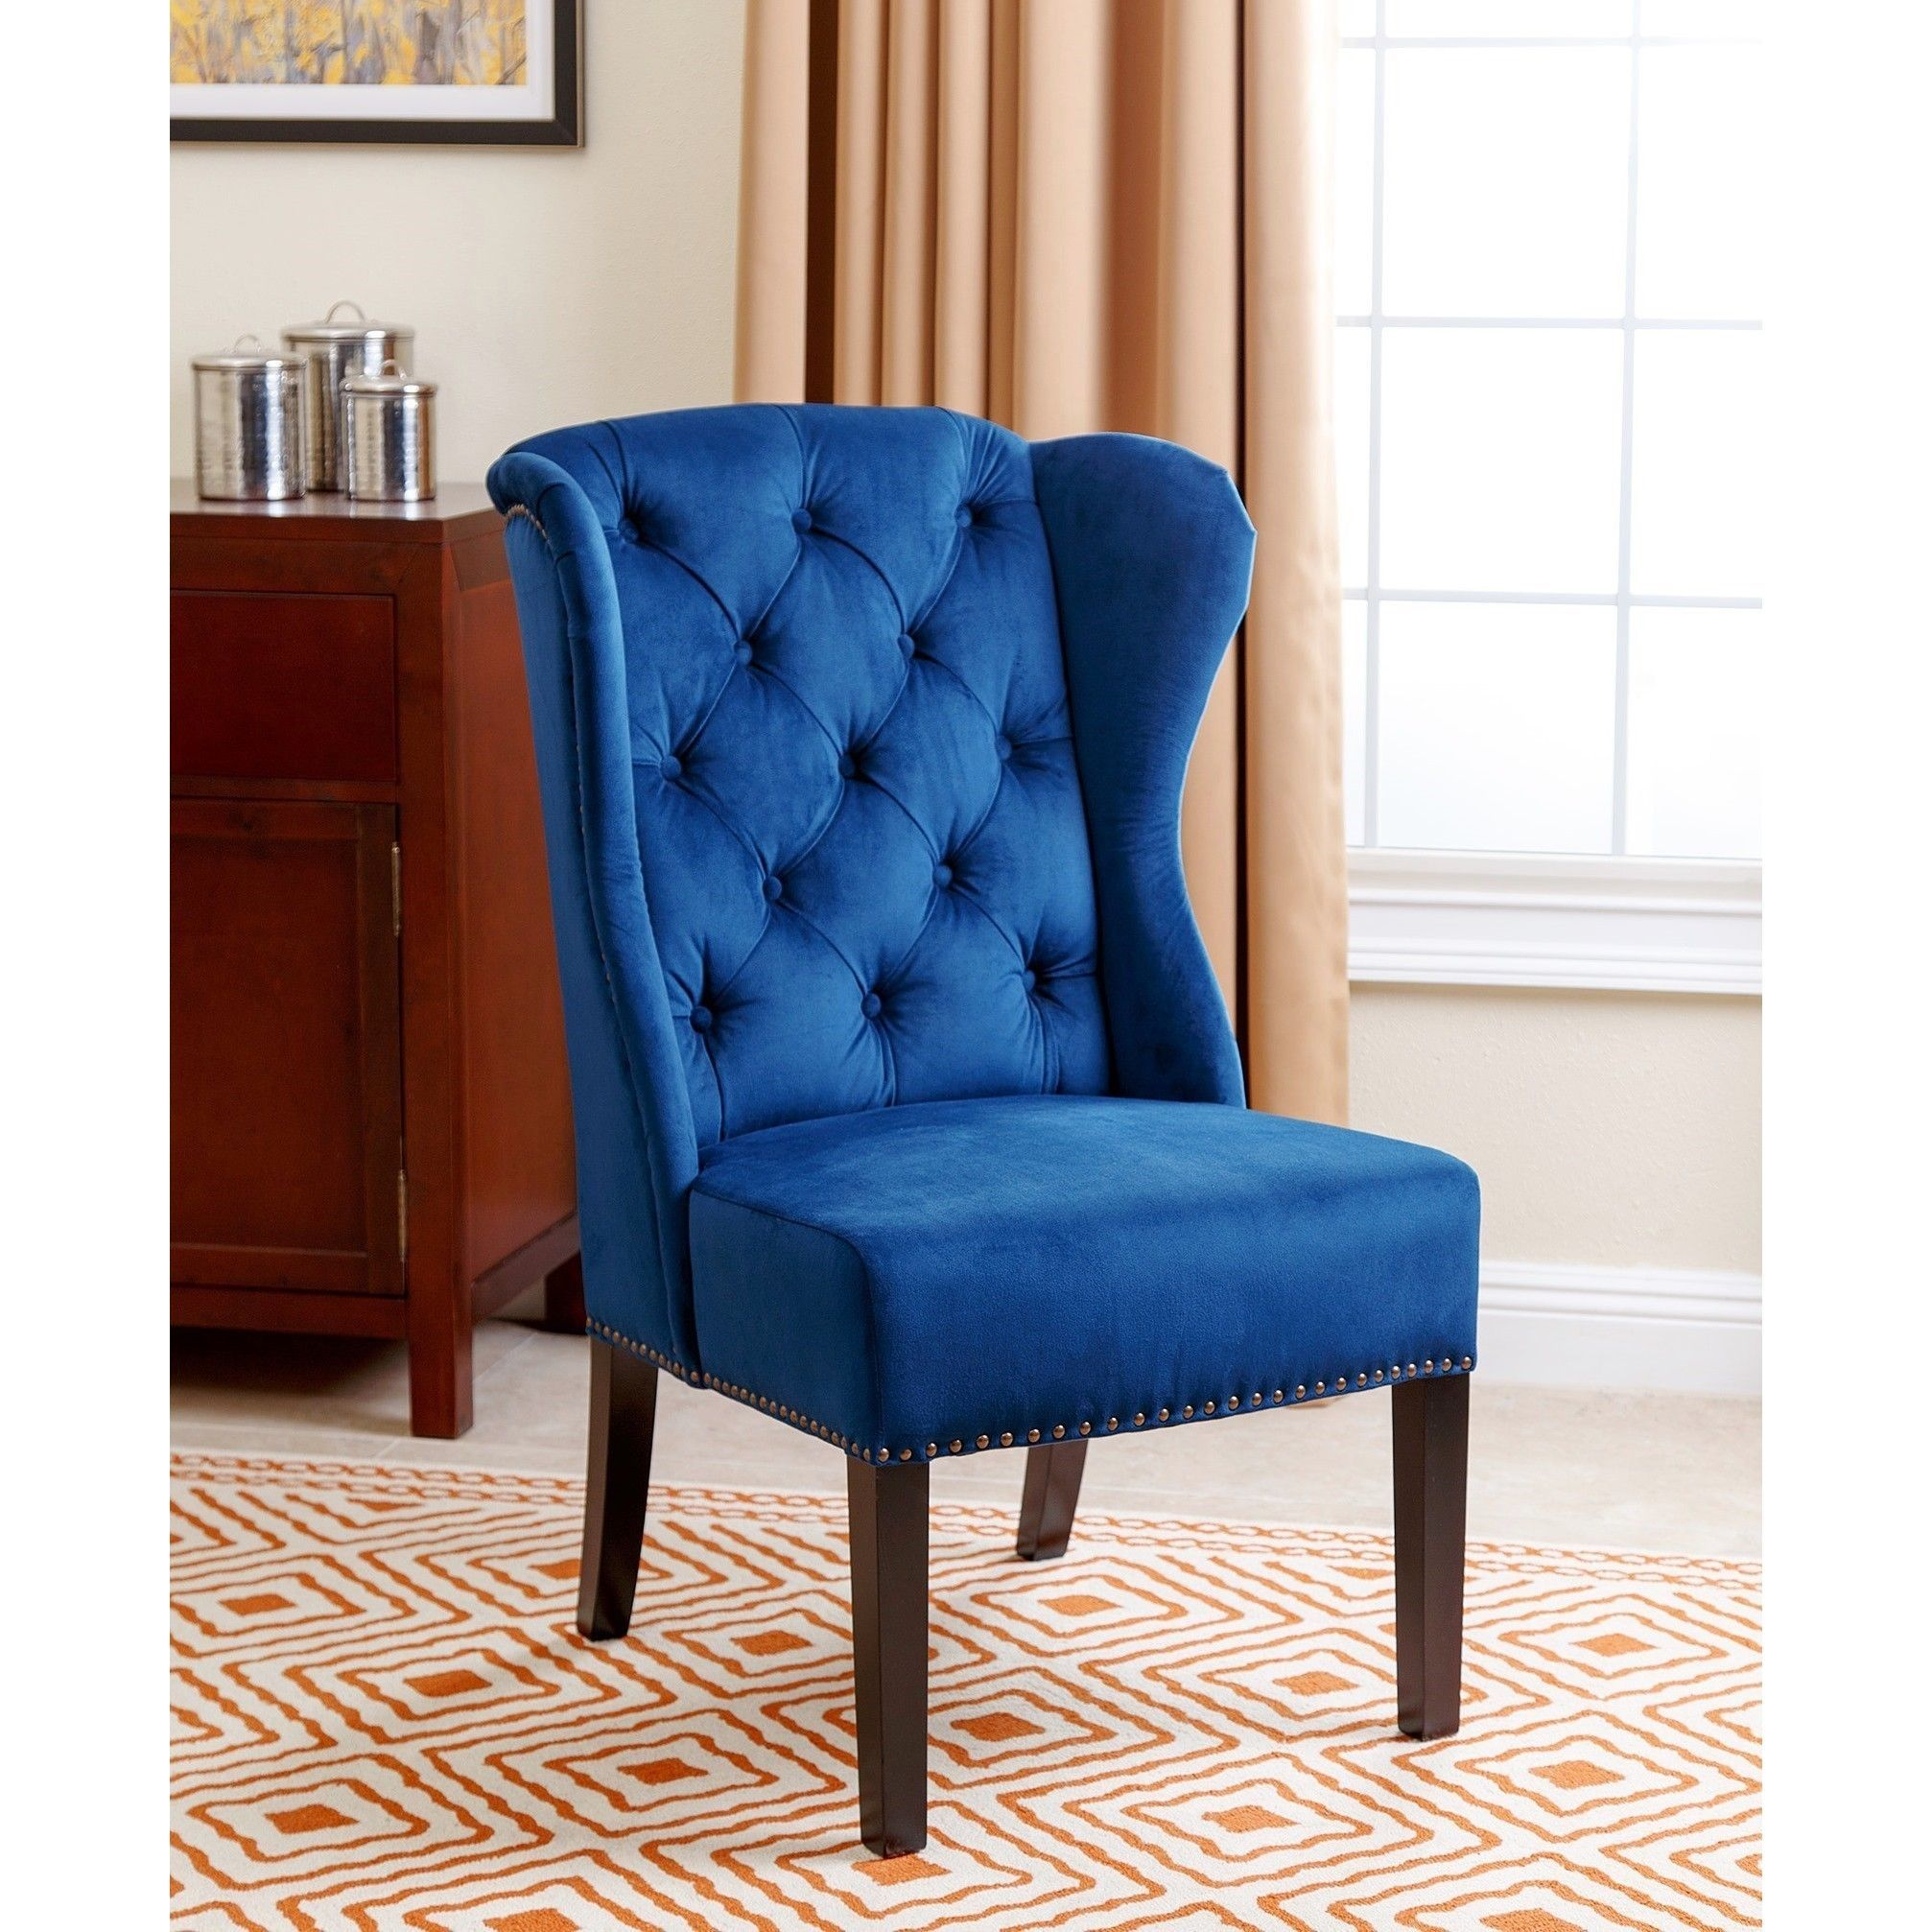 abbyson sierra tufted navy blue velvet wingback dining chair by abbyson - Blue Velvet Chair